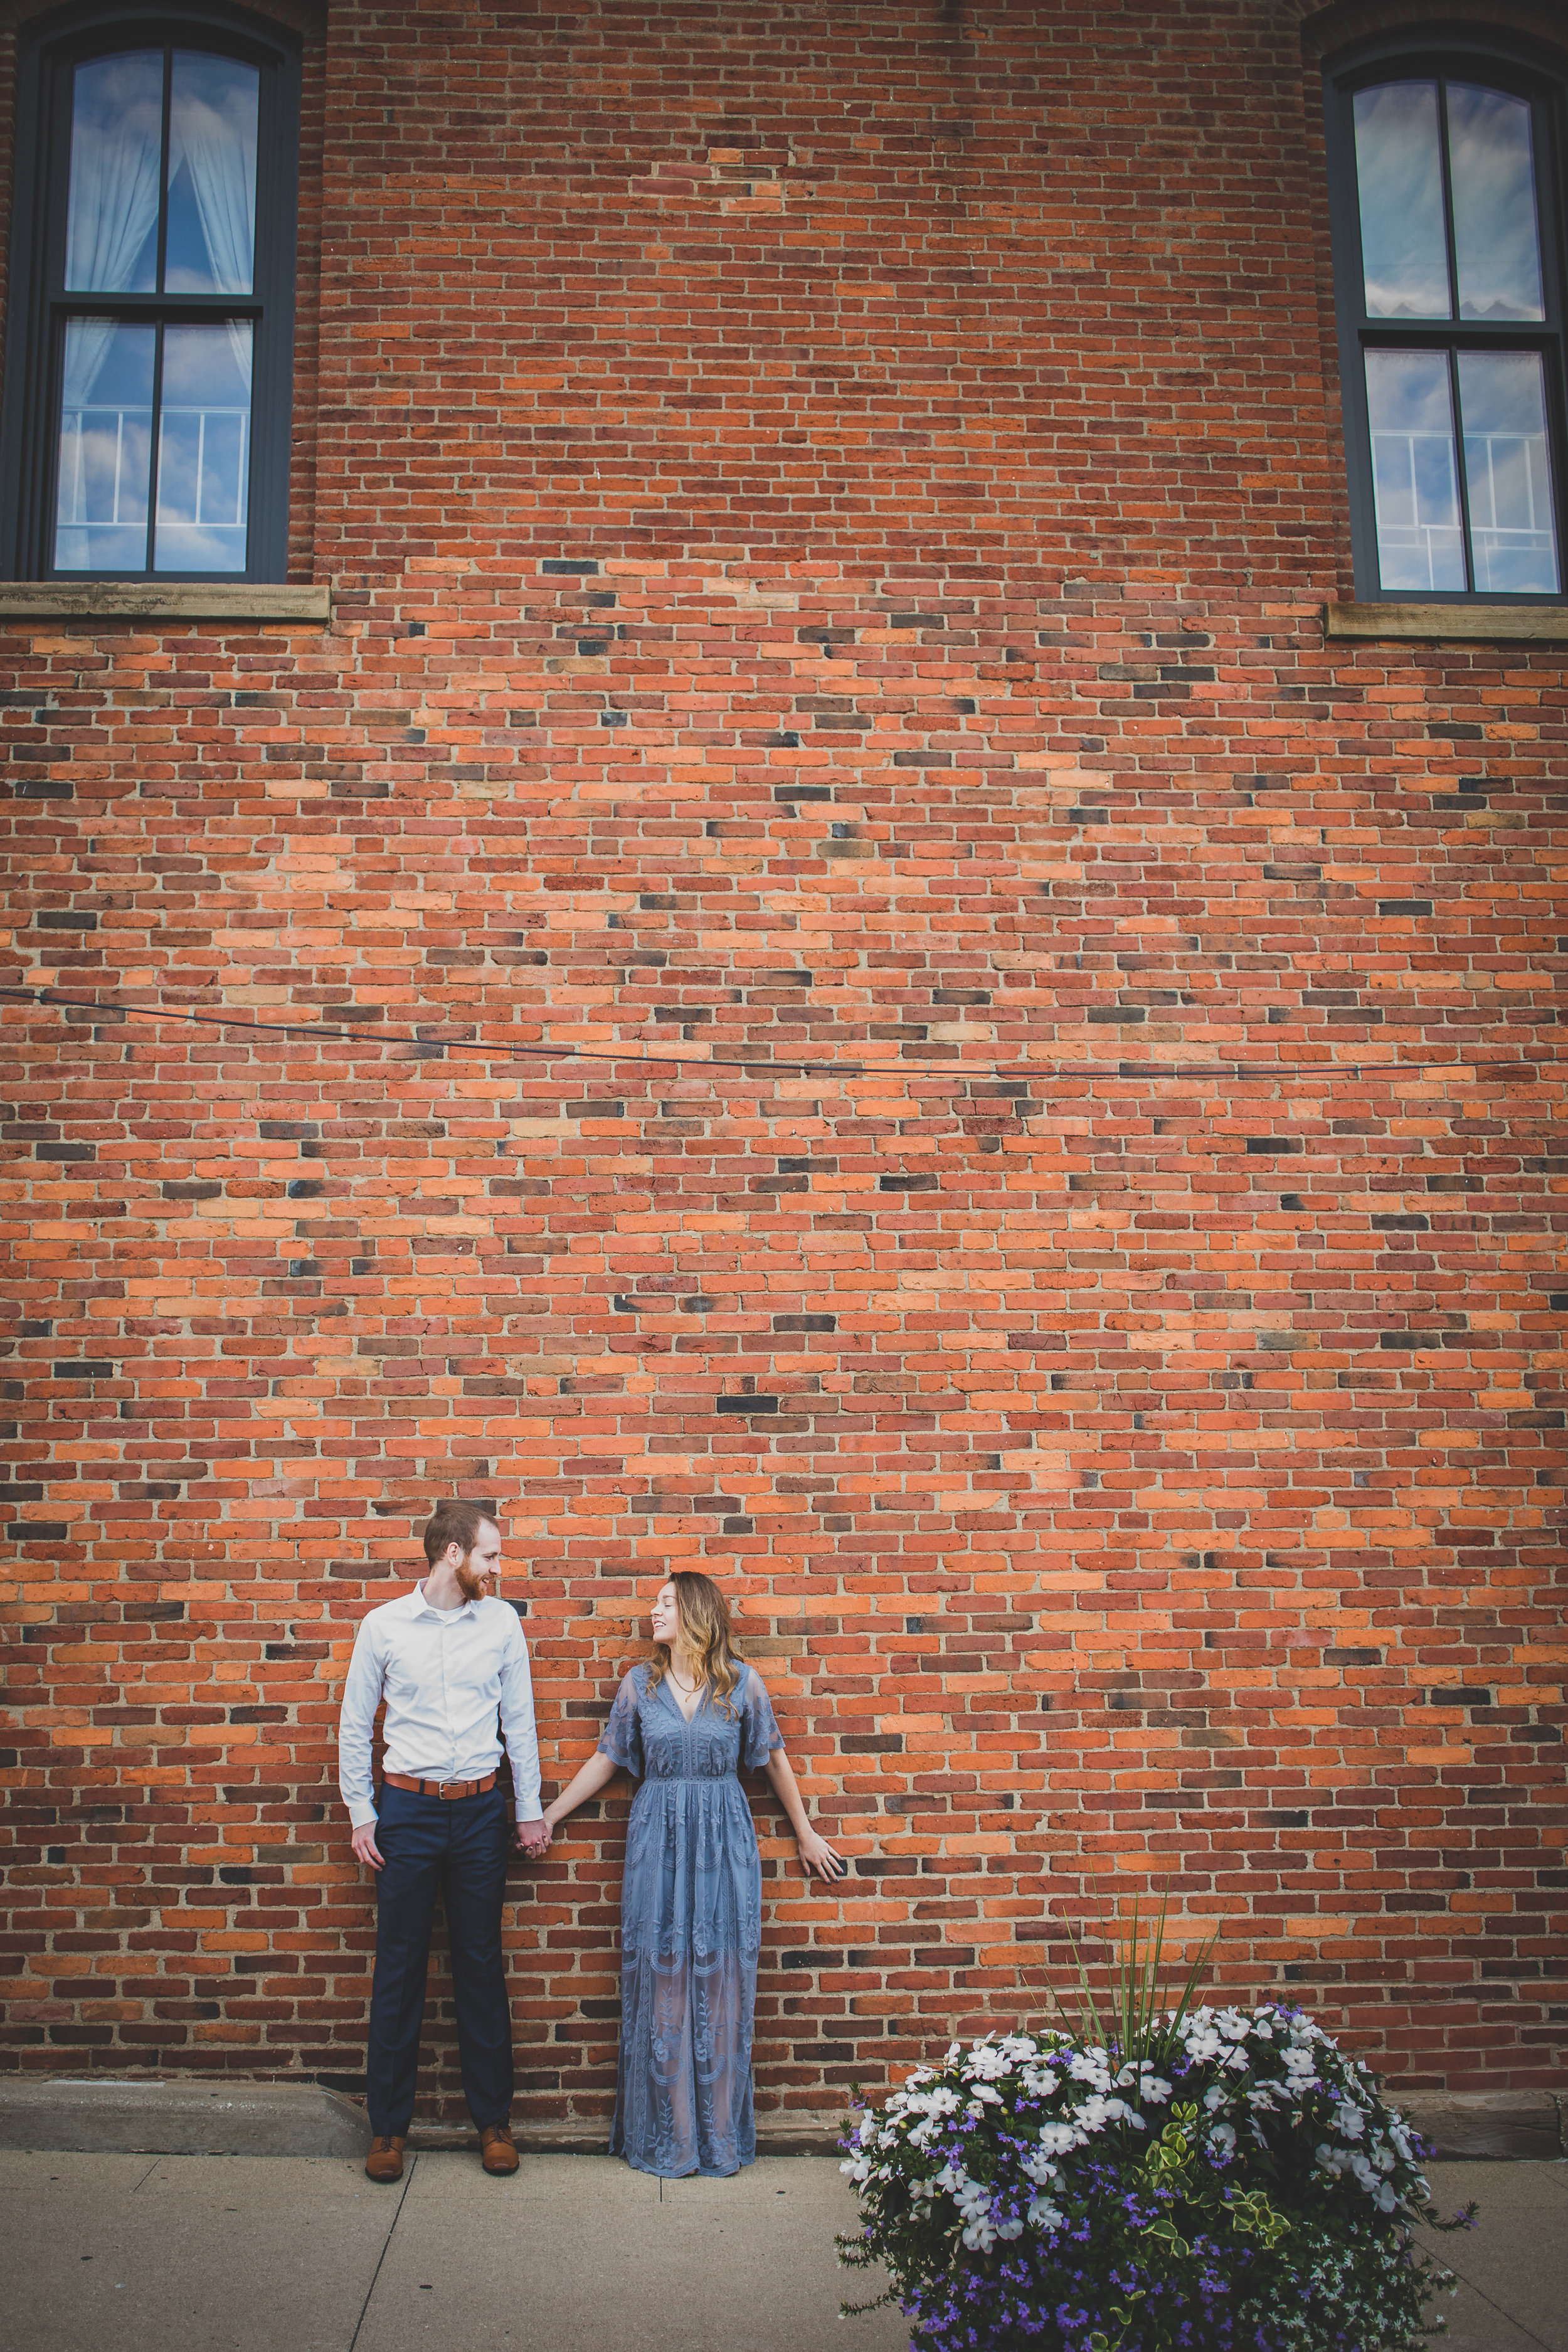 Michelle Carter Photography-Downtown Medina Engagement Session-Brianna and Josh-6.jpg